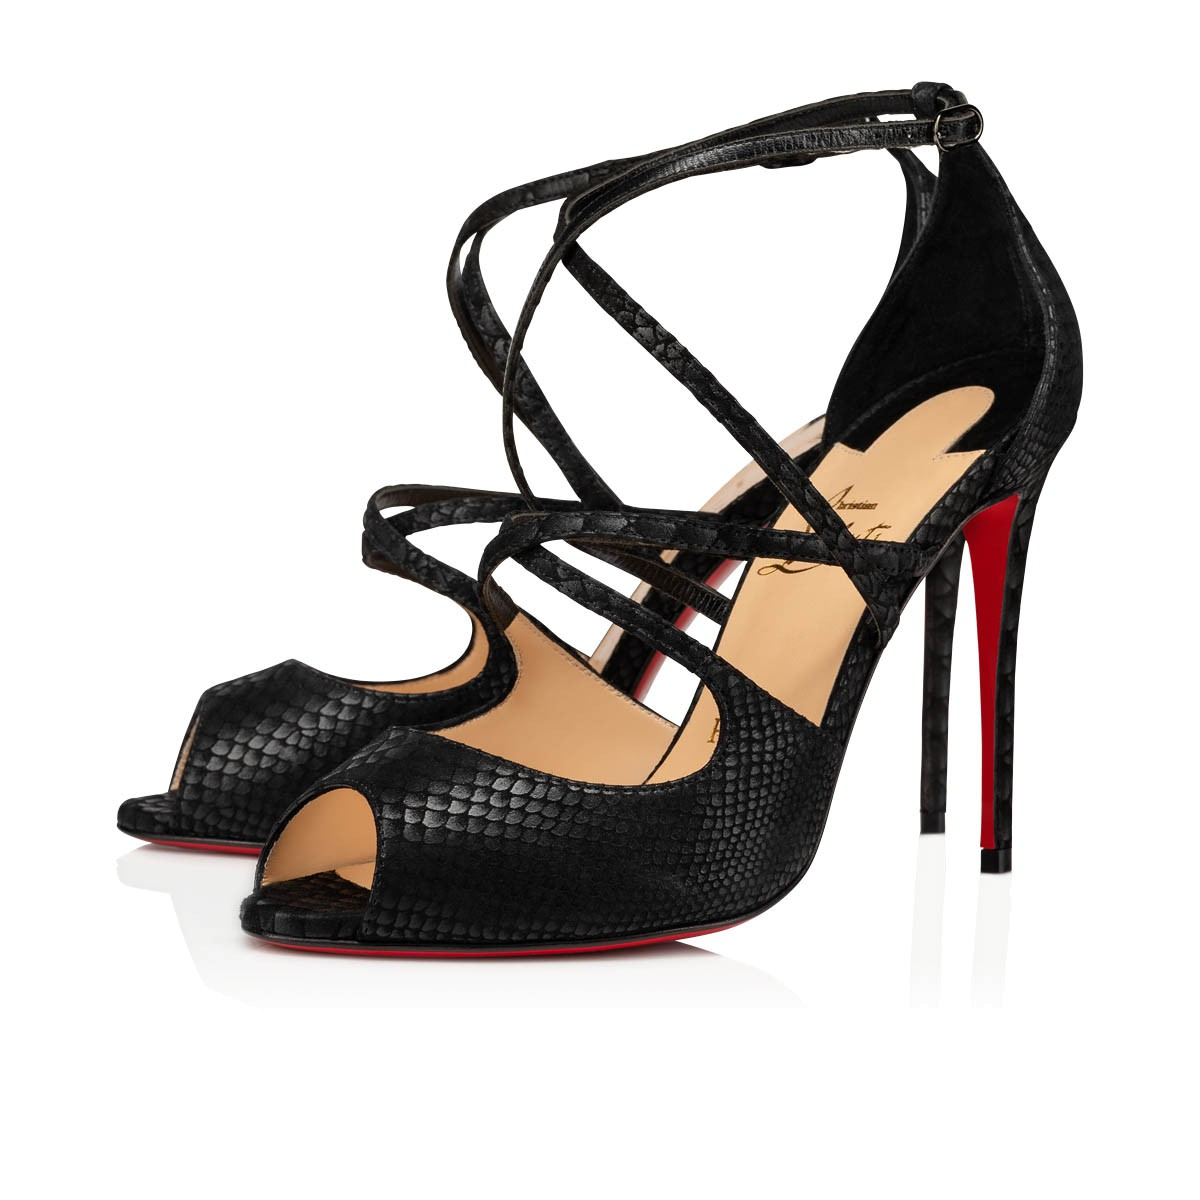 Shoes - Holly - Christian Louboutin